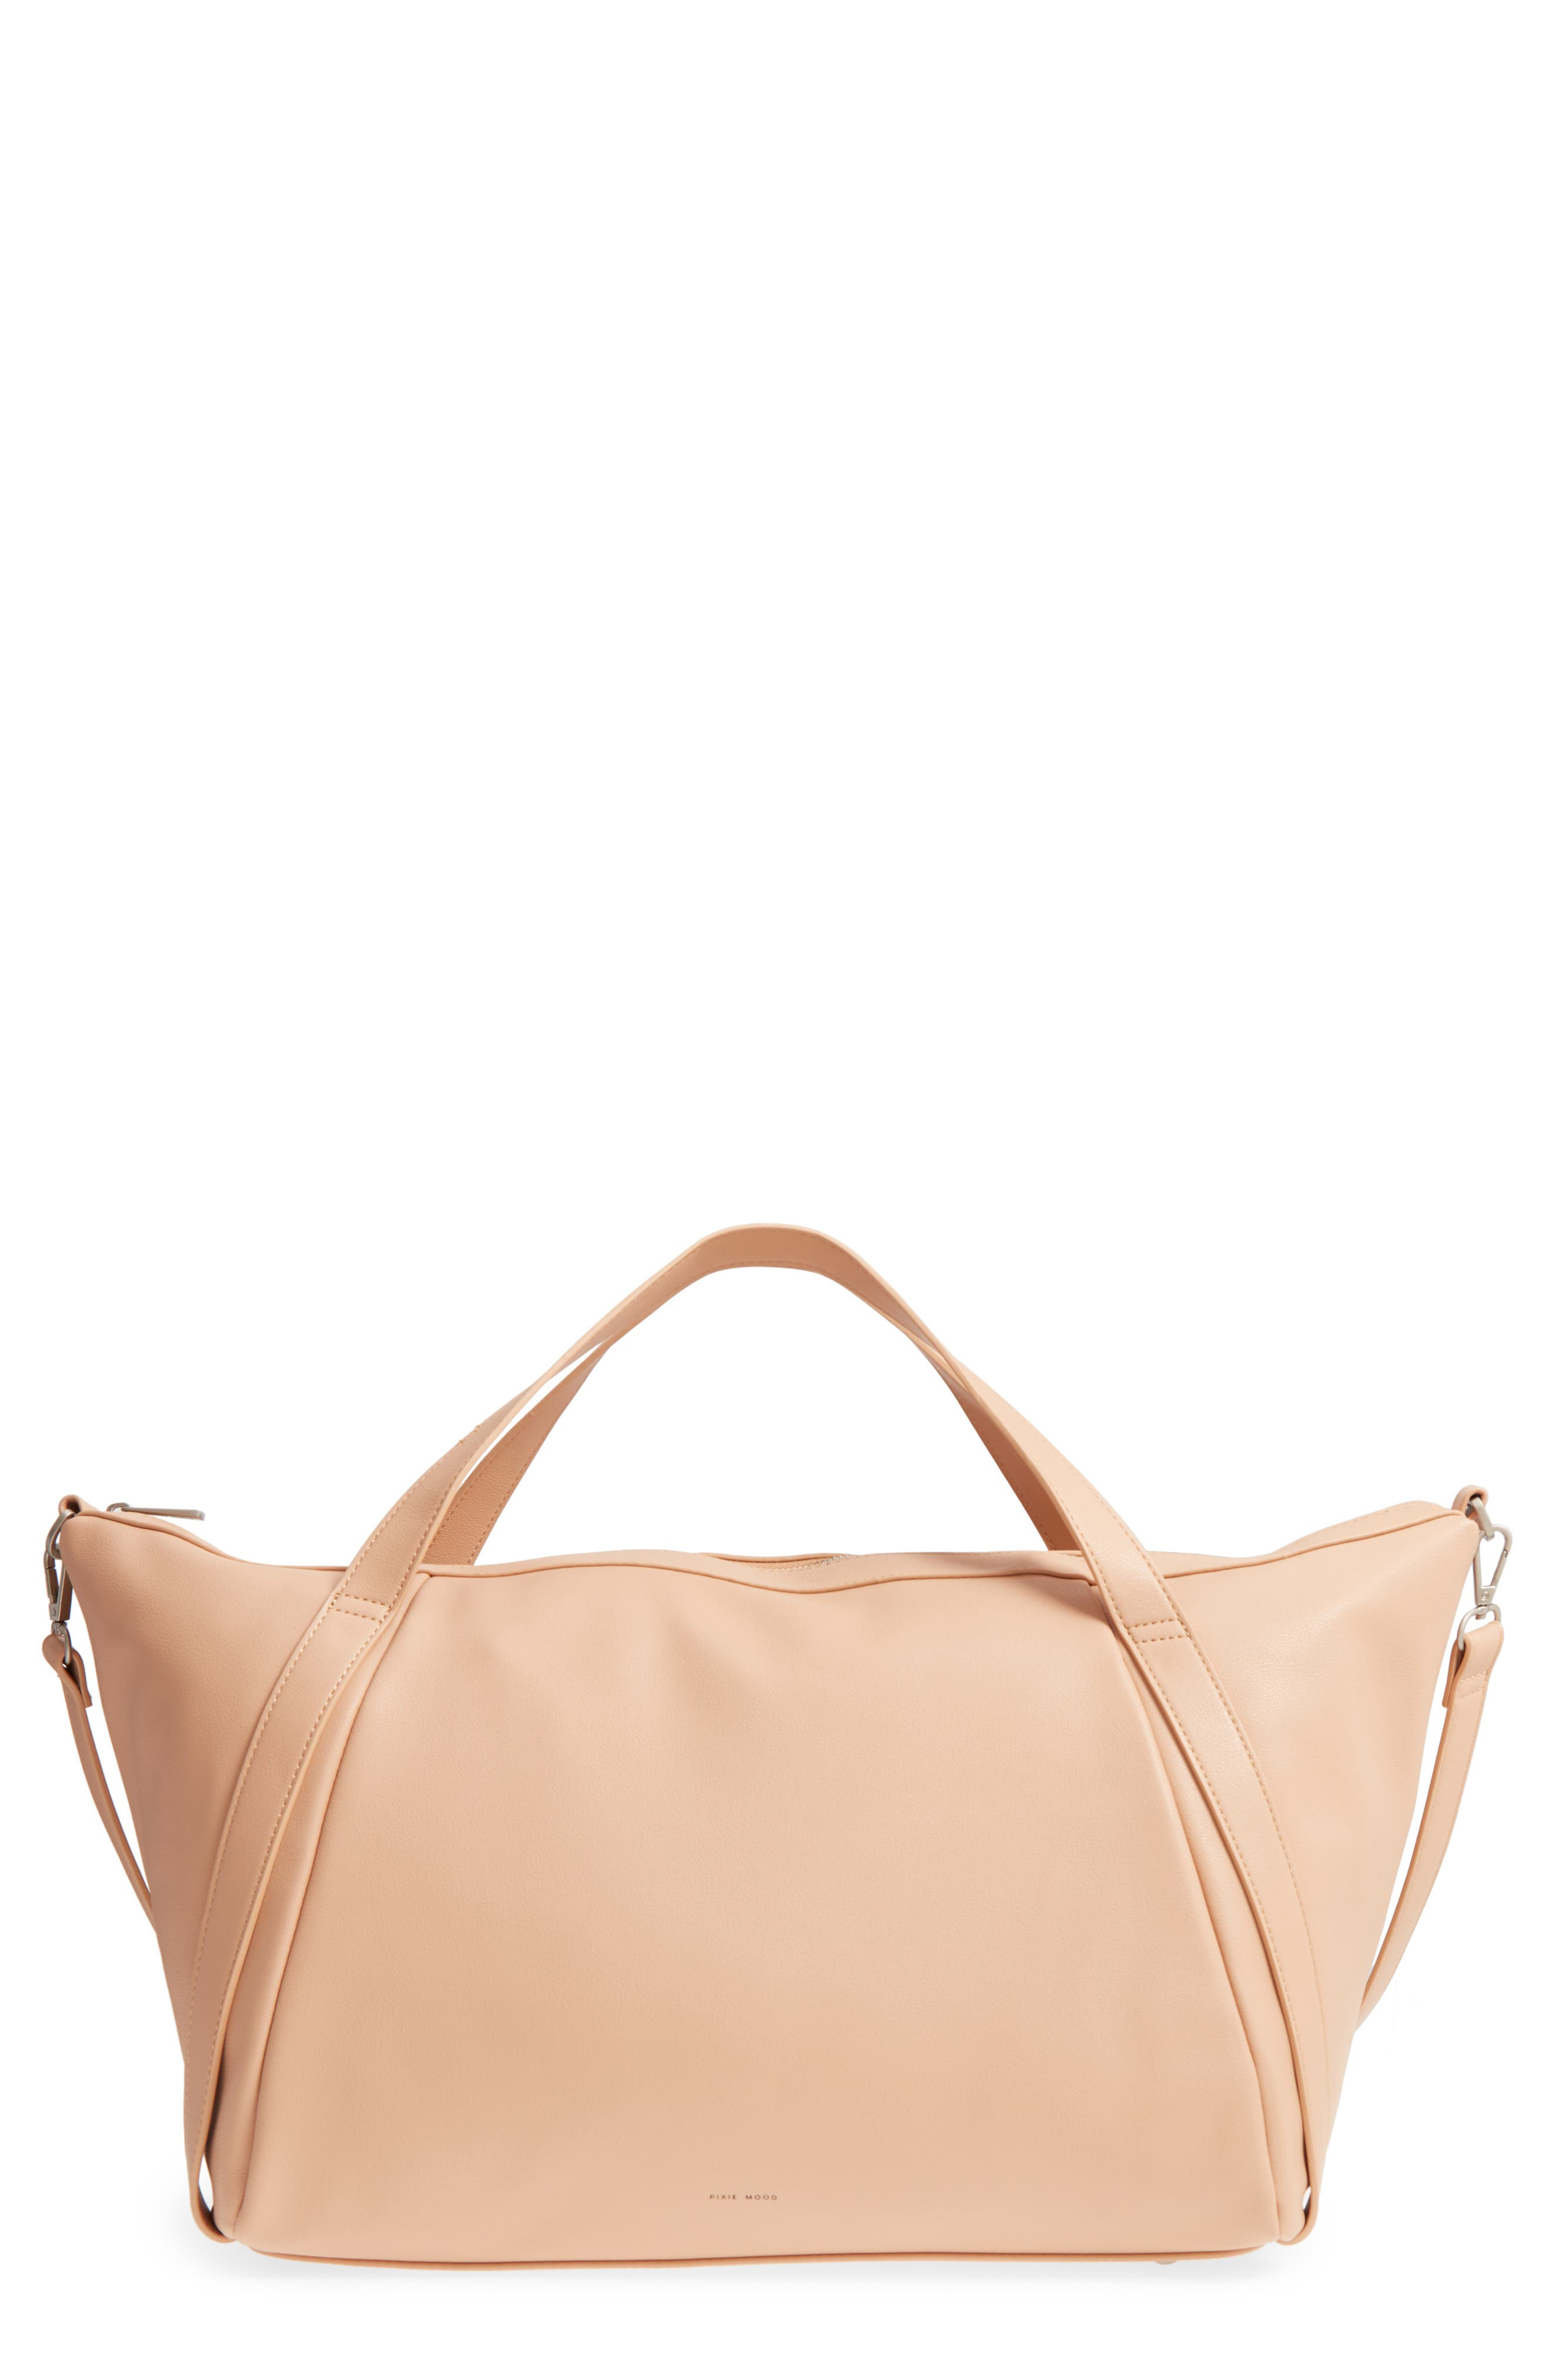 Mia Faux Leather Tote,                         Main,                         color, Praline